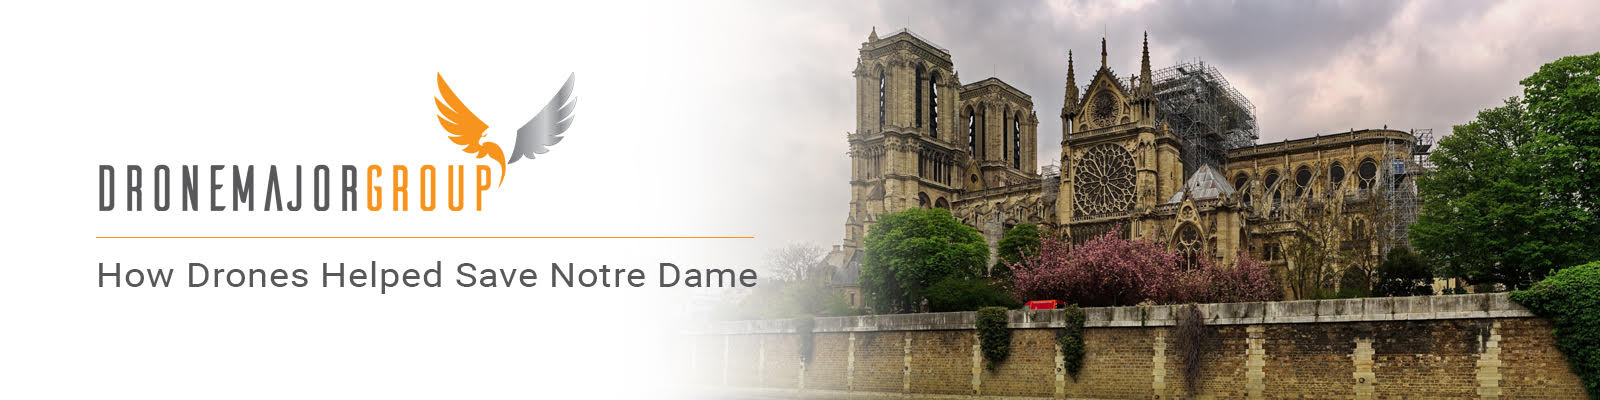 drones at notre dame photo of the cathedral with air drone flying over